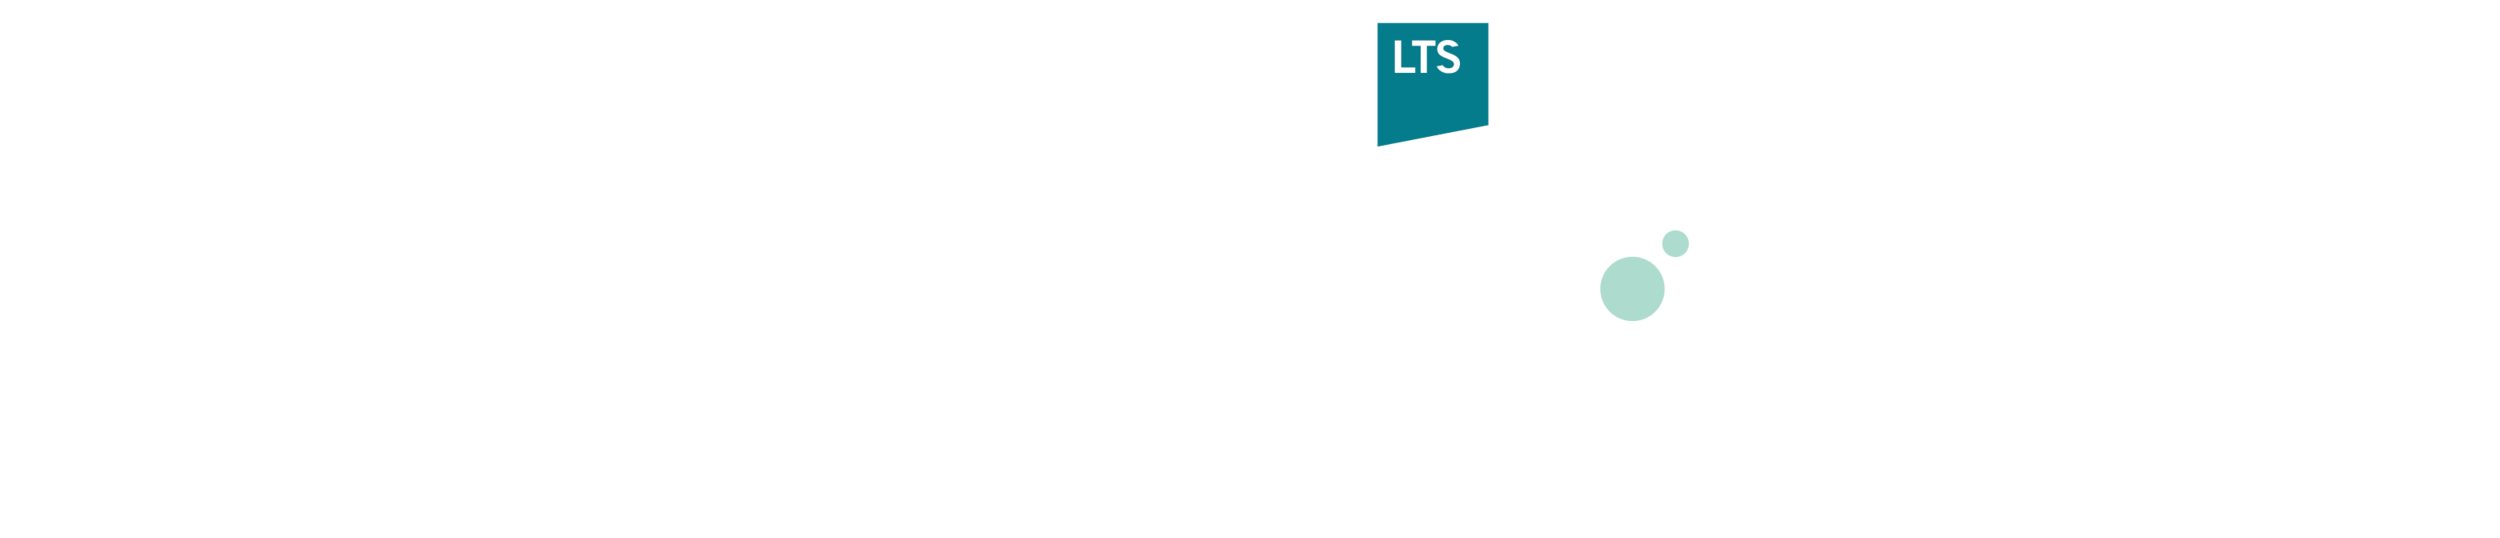 Lab Automation Wording-02.png